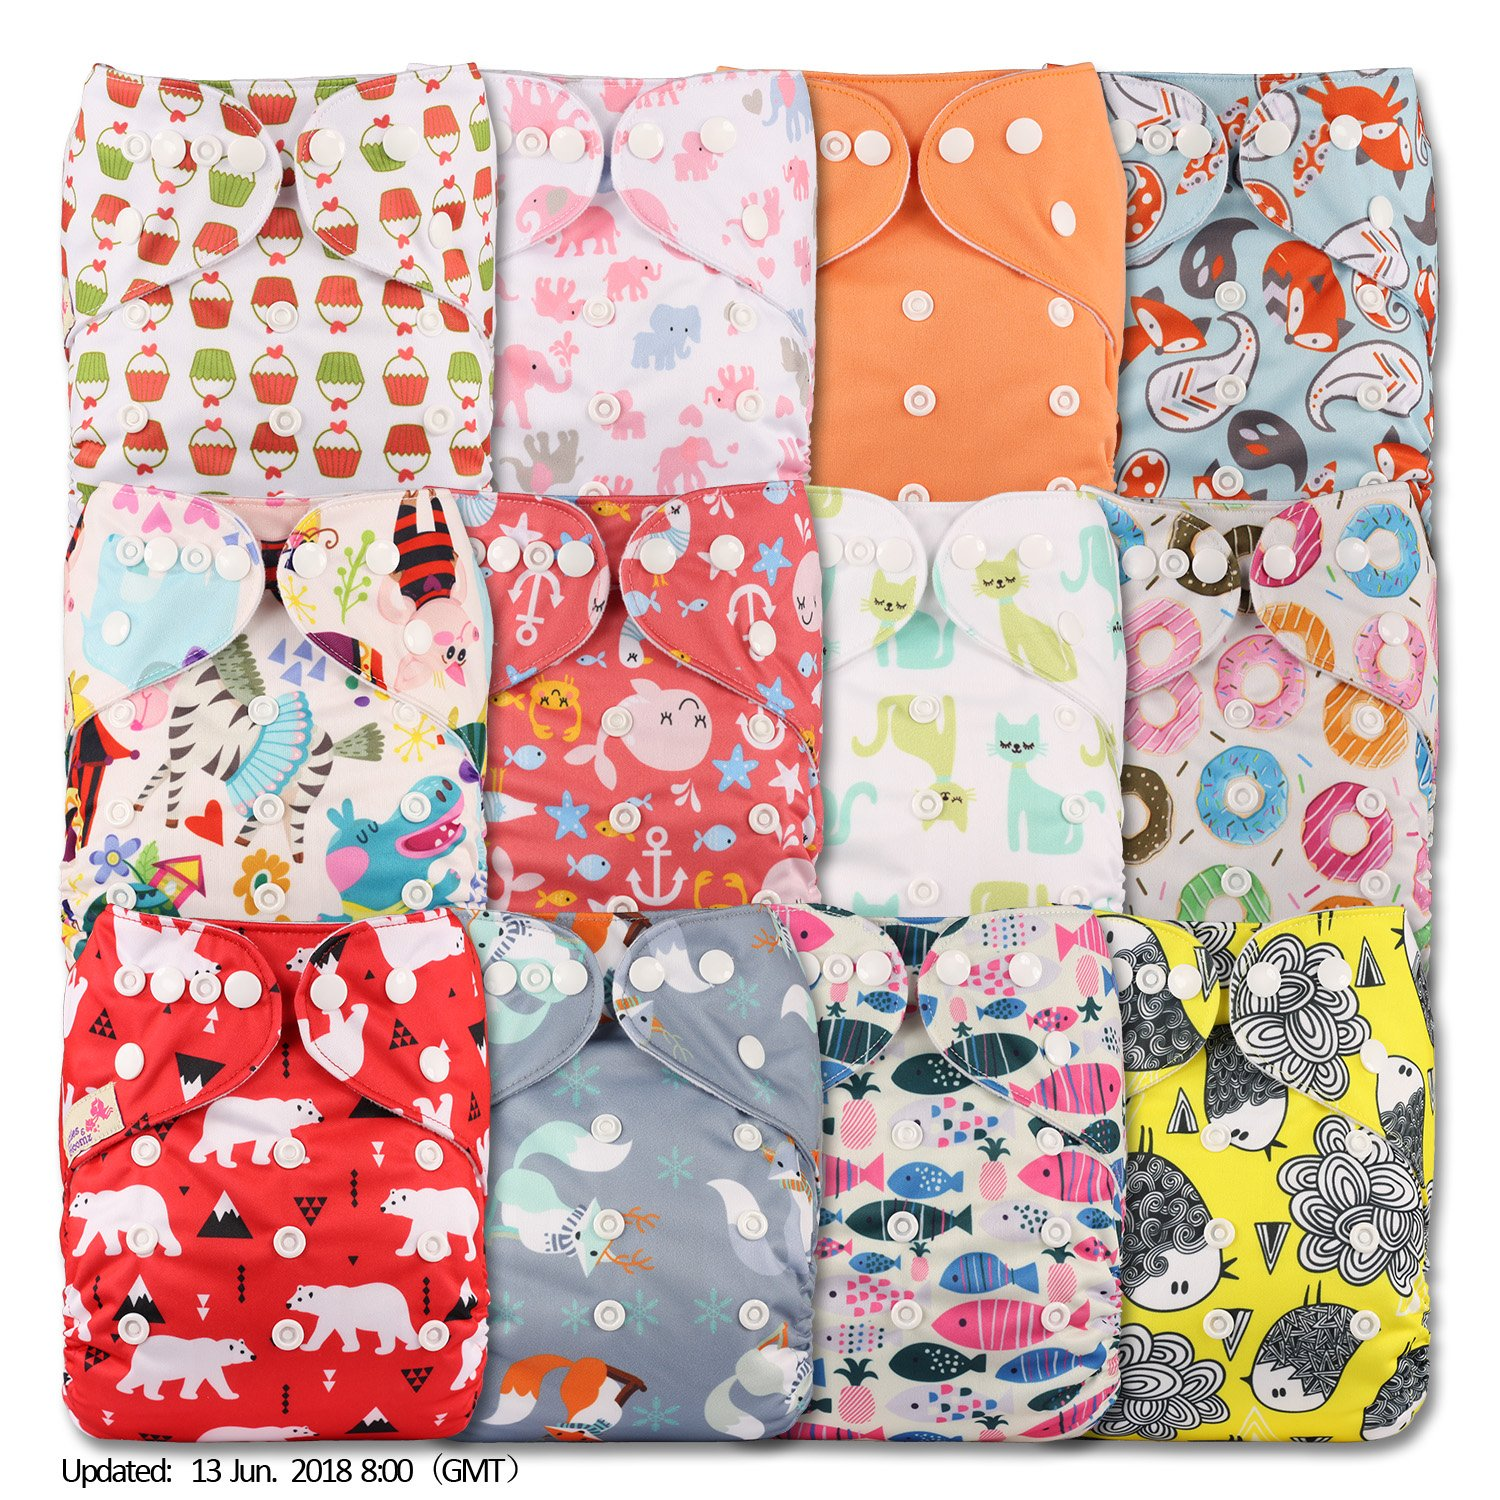 with 12 Bamboo Charcoal Inserts Fastener: Hook-Loop Reusable Pocket Cloth Nappy Littles /& Bloomz Set of 12 Patterns 1202